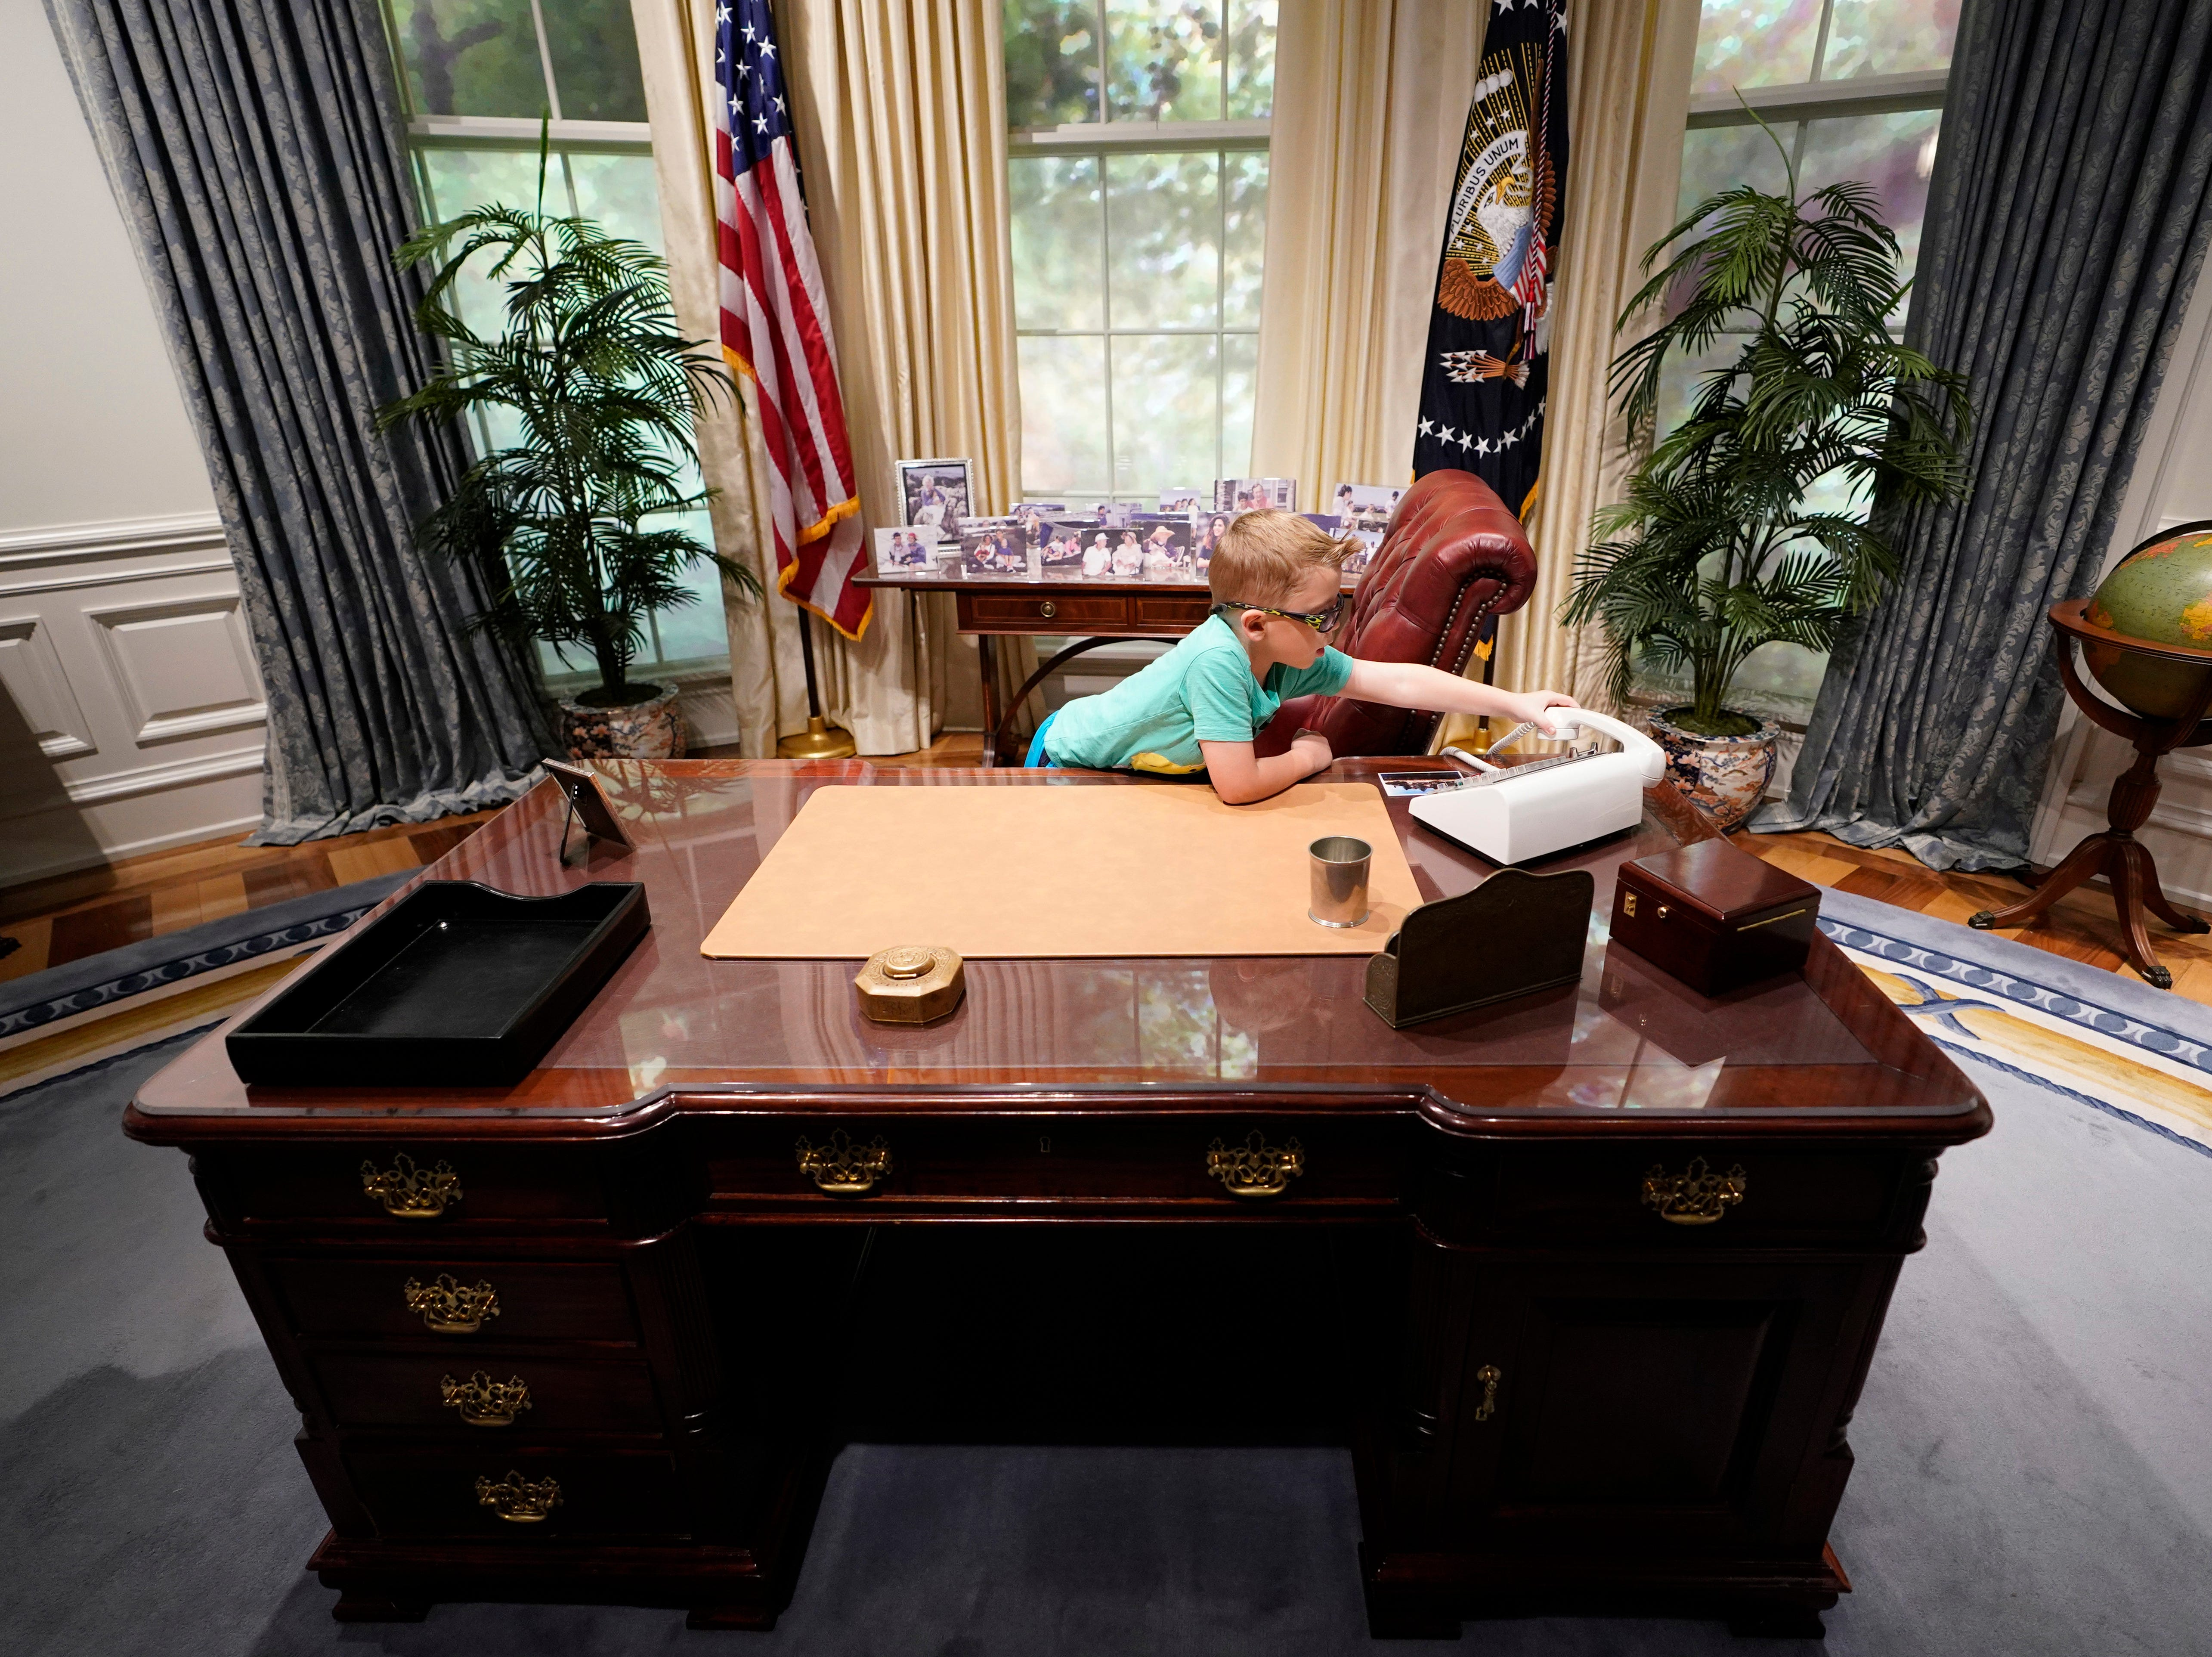 Kalob Duke, 6, of College Station, Texas, sits behind the desk in a replica of the Oval Office exhibit at the George H.W. Bush Library and Museum Saturday, Dec. 1, 2018, in College Station.